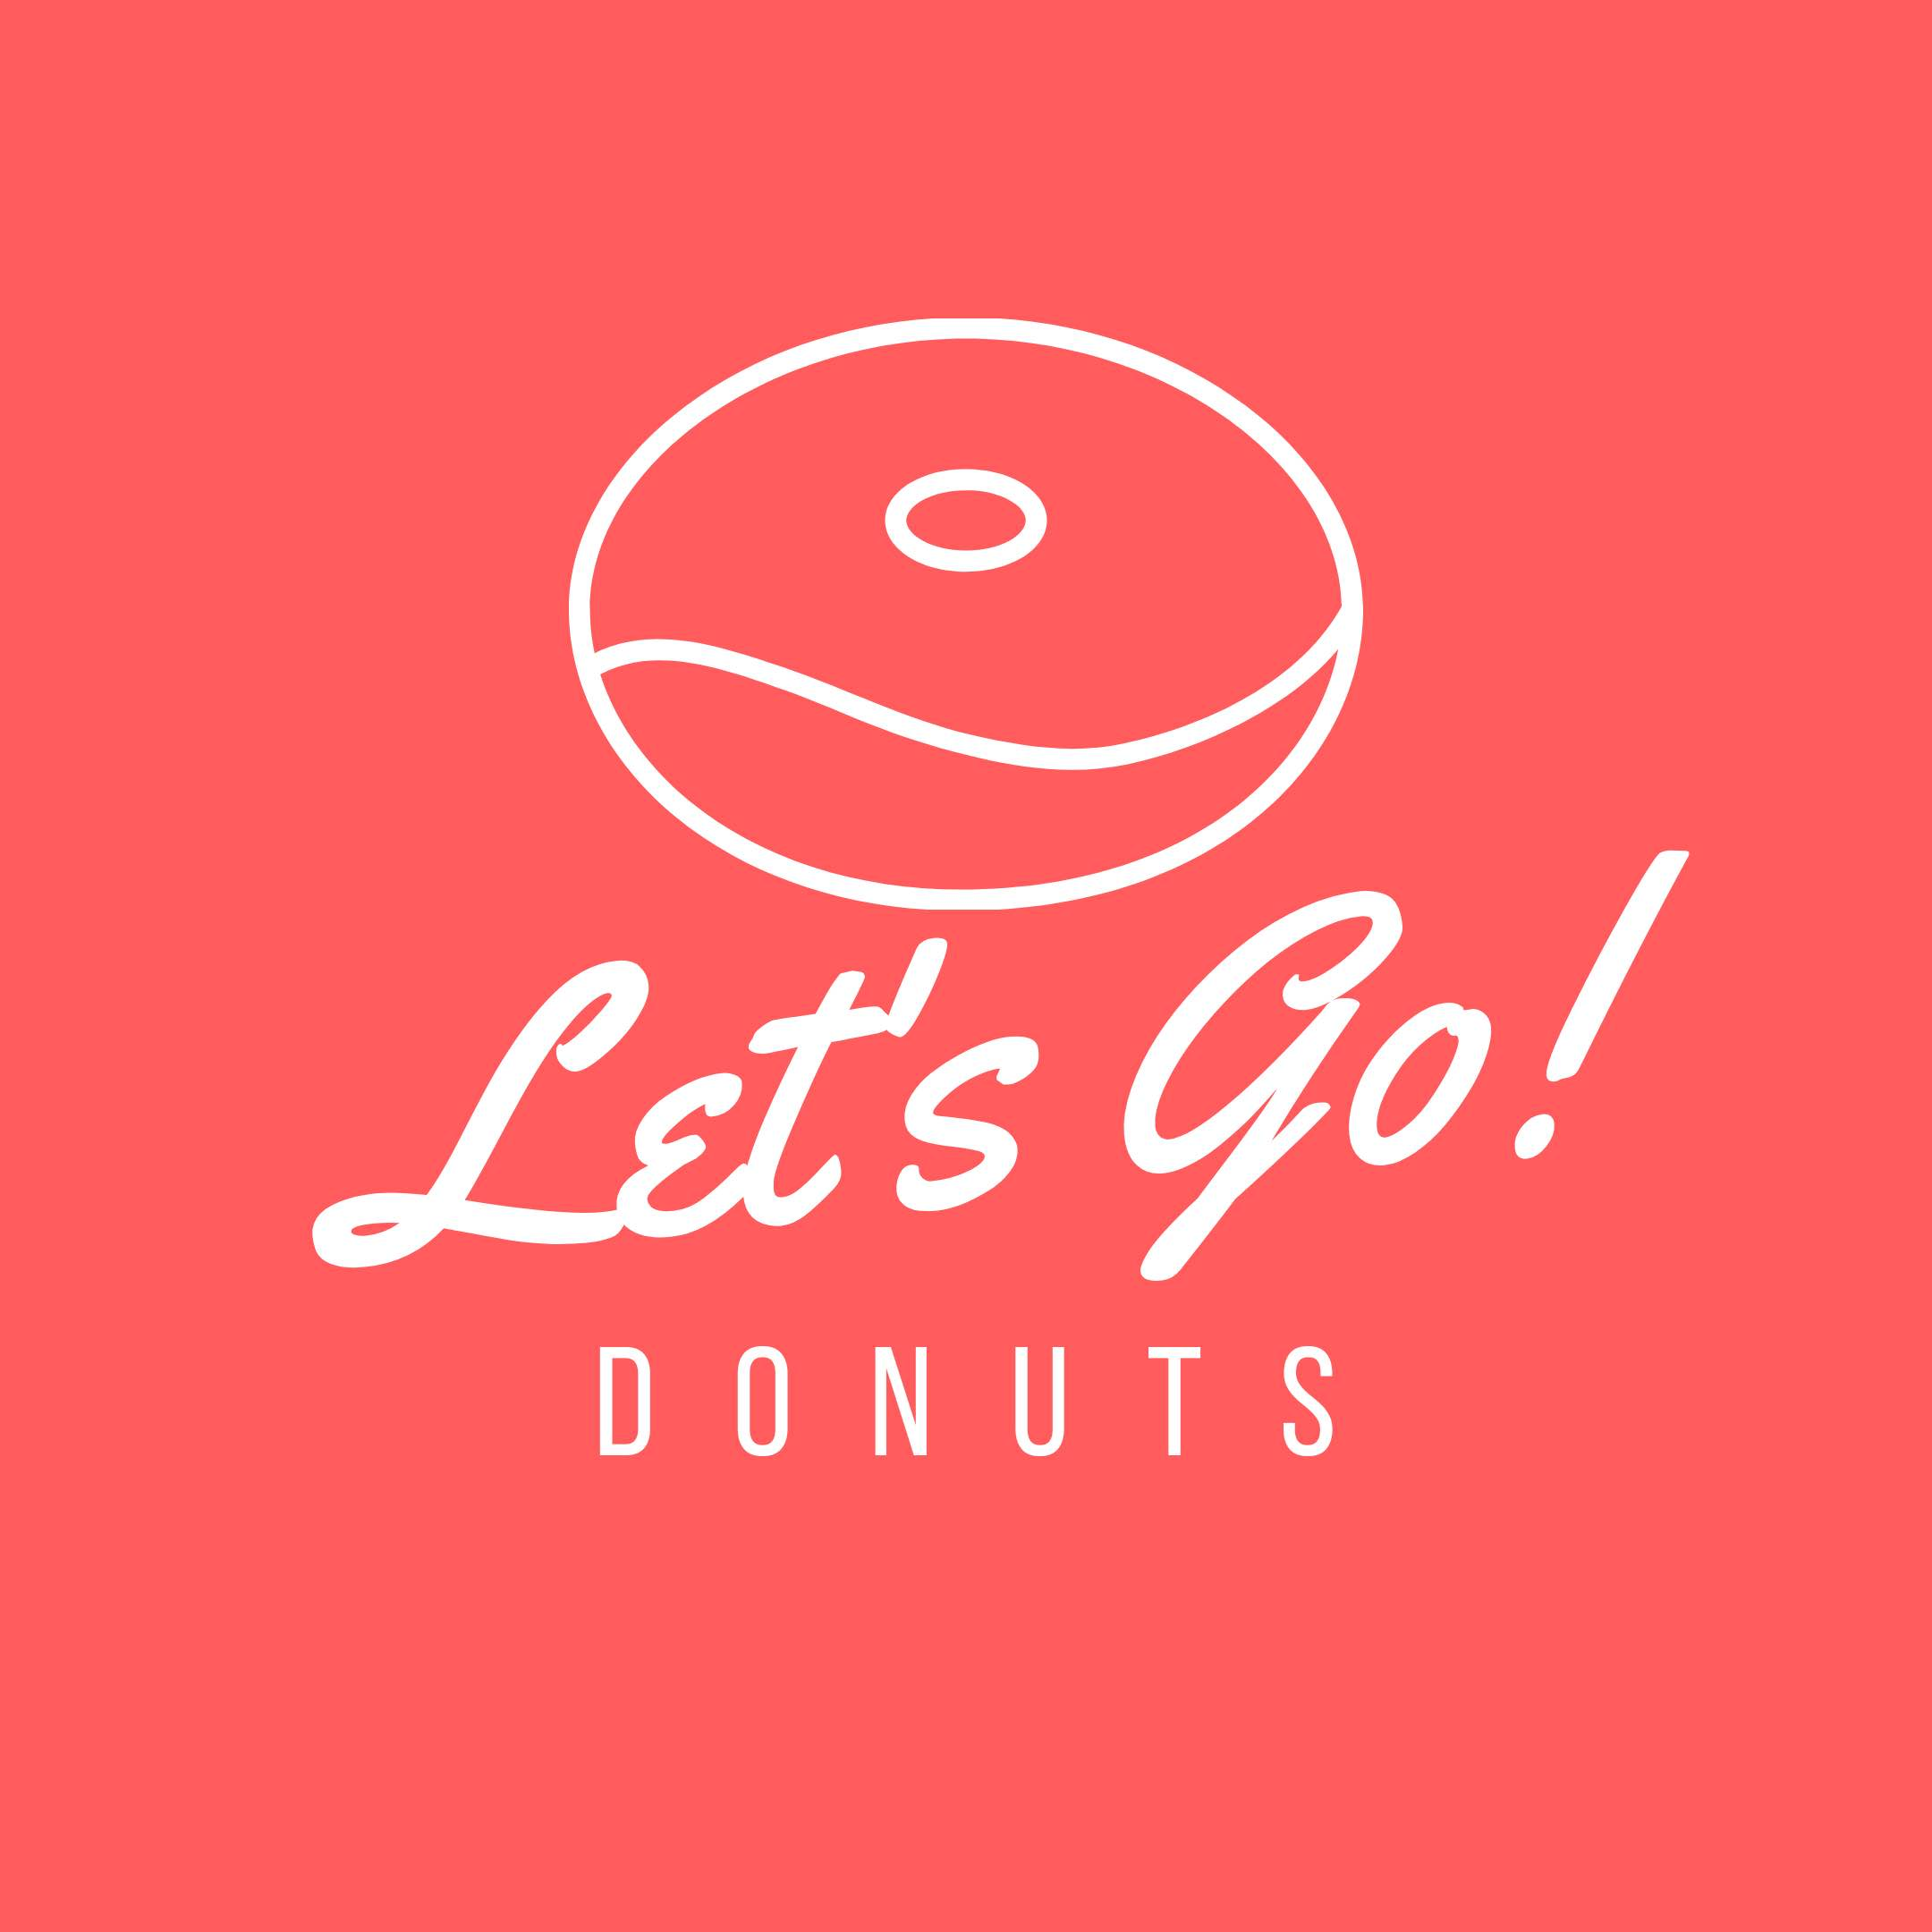 Let's Go Donuts